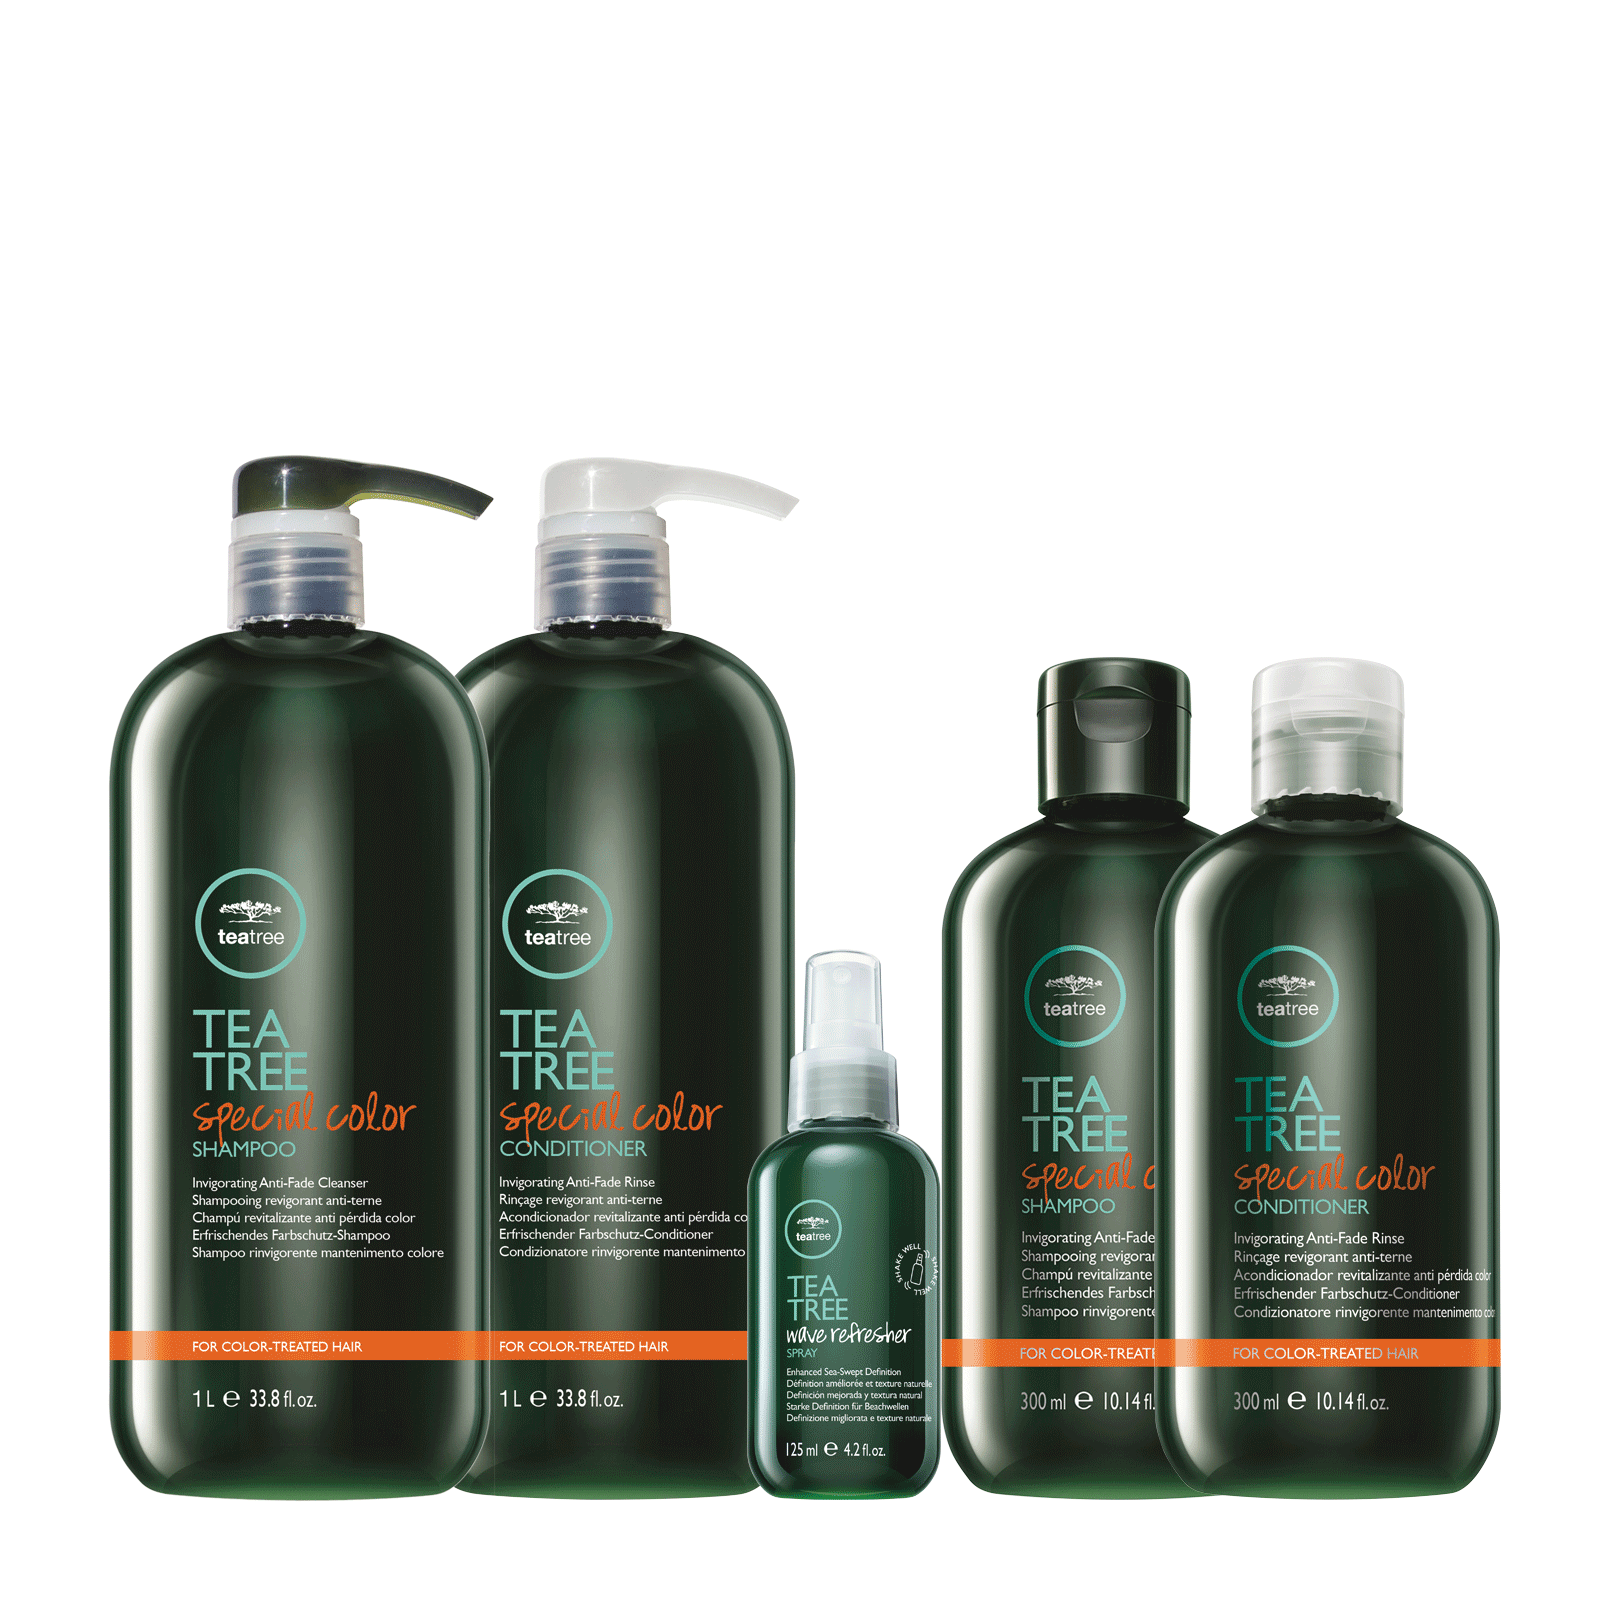 Paul Mitchell Tea Tree Special Color Shampoo, Conditioner 8.5 33.8 Liter Duo